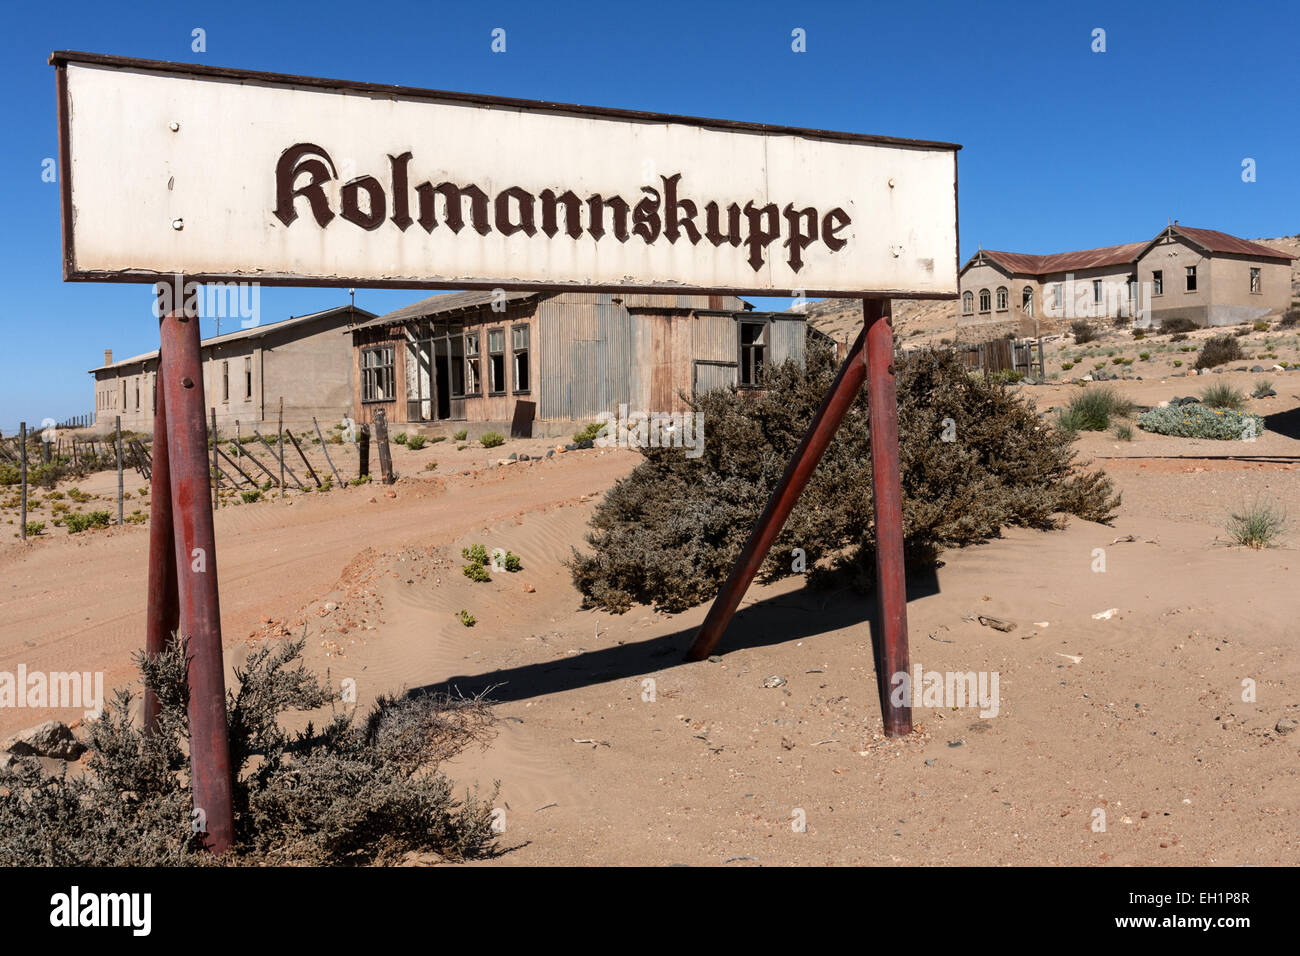 Town sign of Kolmannskuppe, former diamond town, now a ghost town, Kolmanskop, Kolmannskuppe, near Lüderitz, - Stock Image